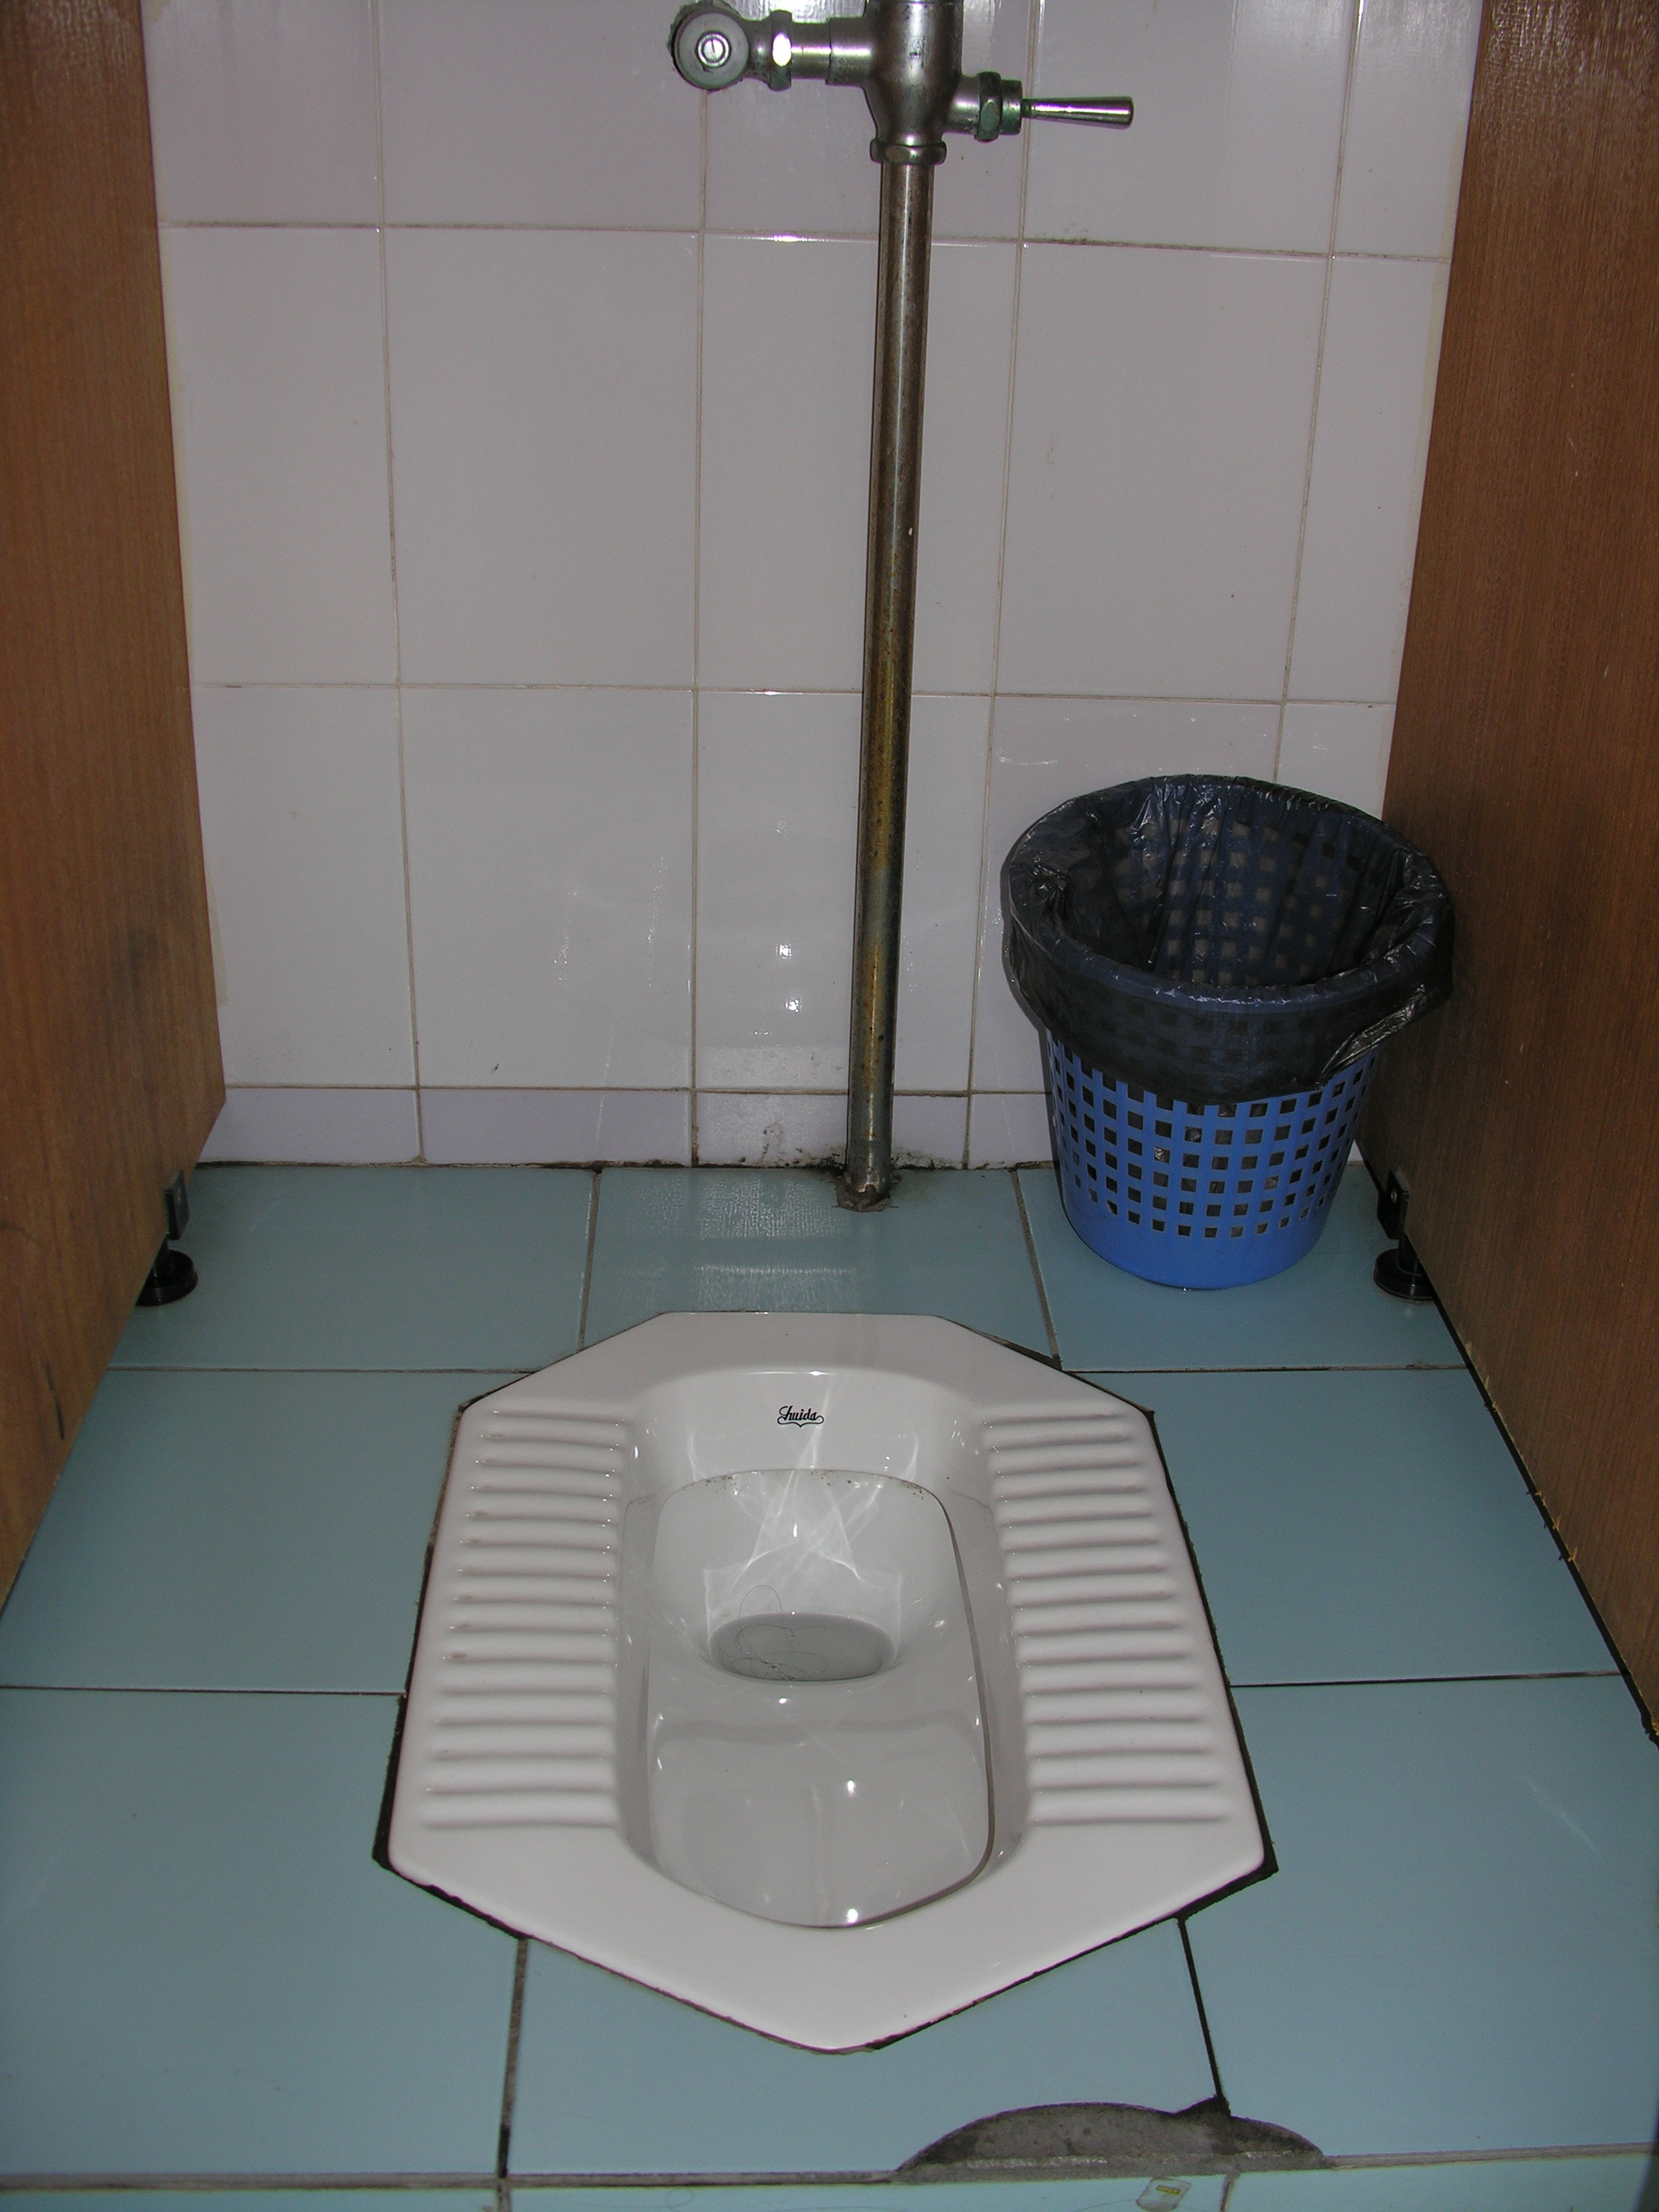 Bathrooms in china 28 images how to use a squat toilet for Bathrooms in china